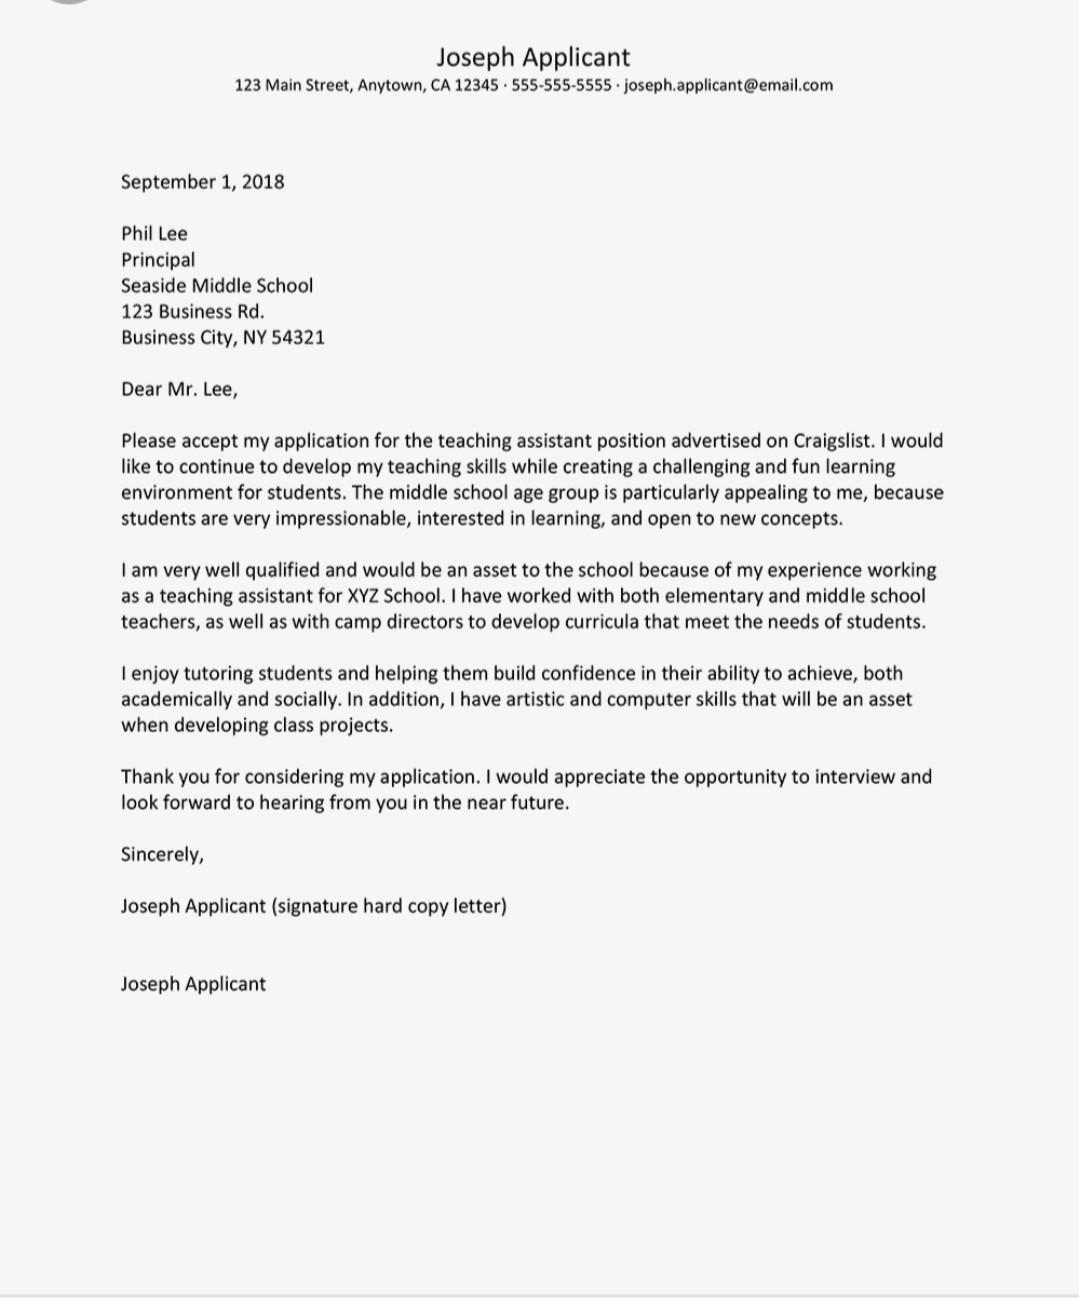 Letter To Principal From Teacher from hi-static.z-dn.net